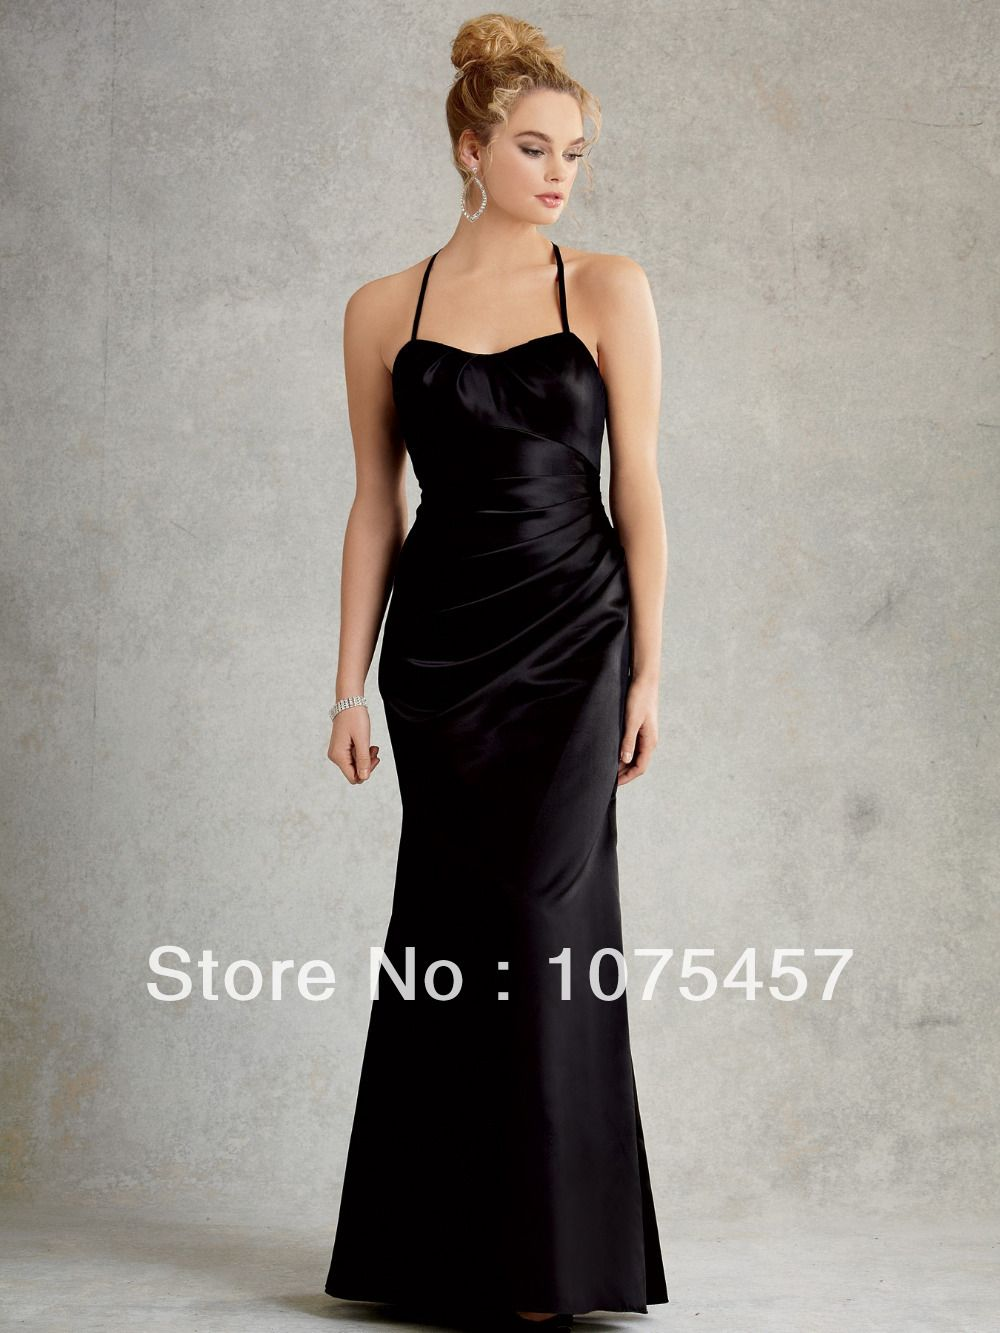 Click to buy unique black halter bridesmaid dresses taffeta click to buy unique black halter bridesmaid dresses taffeta lace back with ombrellifo Image collections